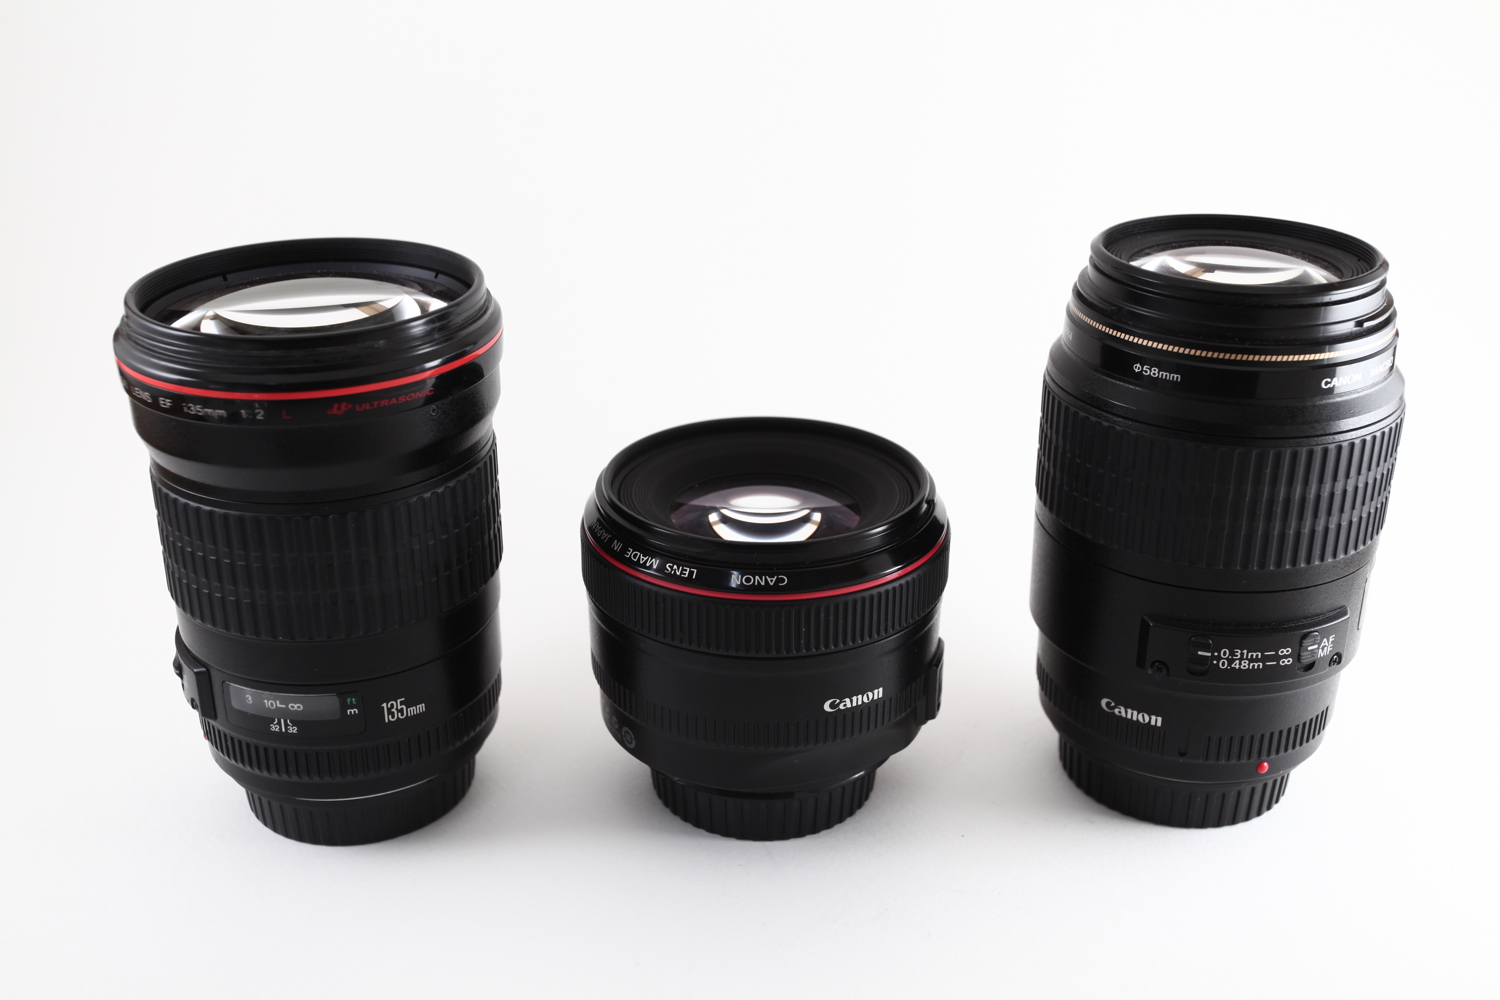 Image: Prime lens are of fixed focal length. Here you can see a 135mm, a 50mm and a 100mm lens. The...